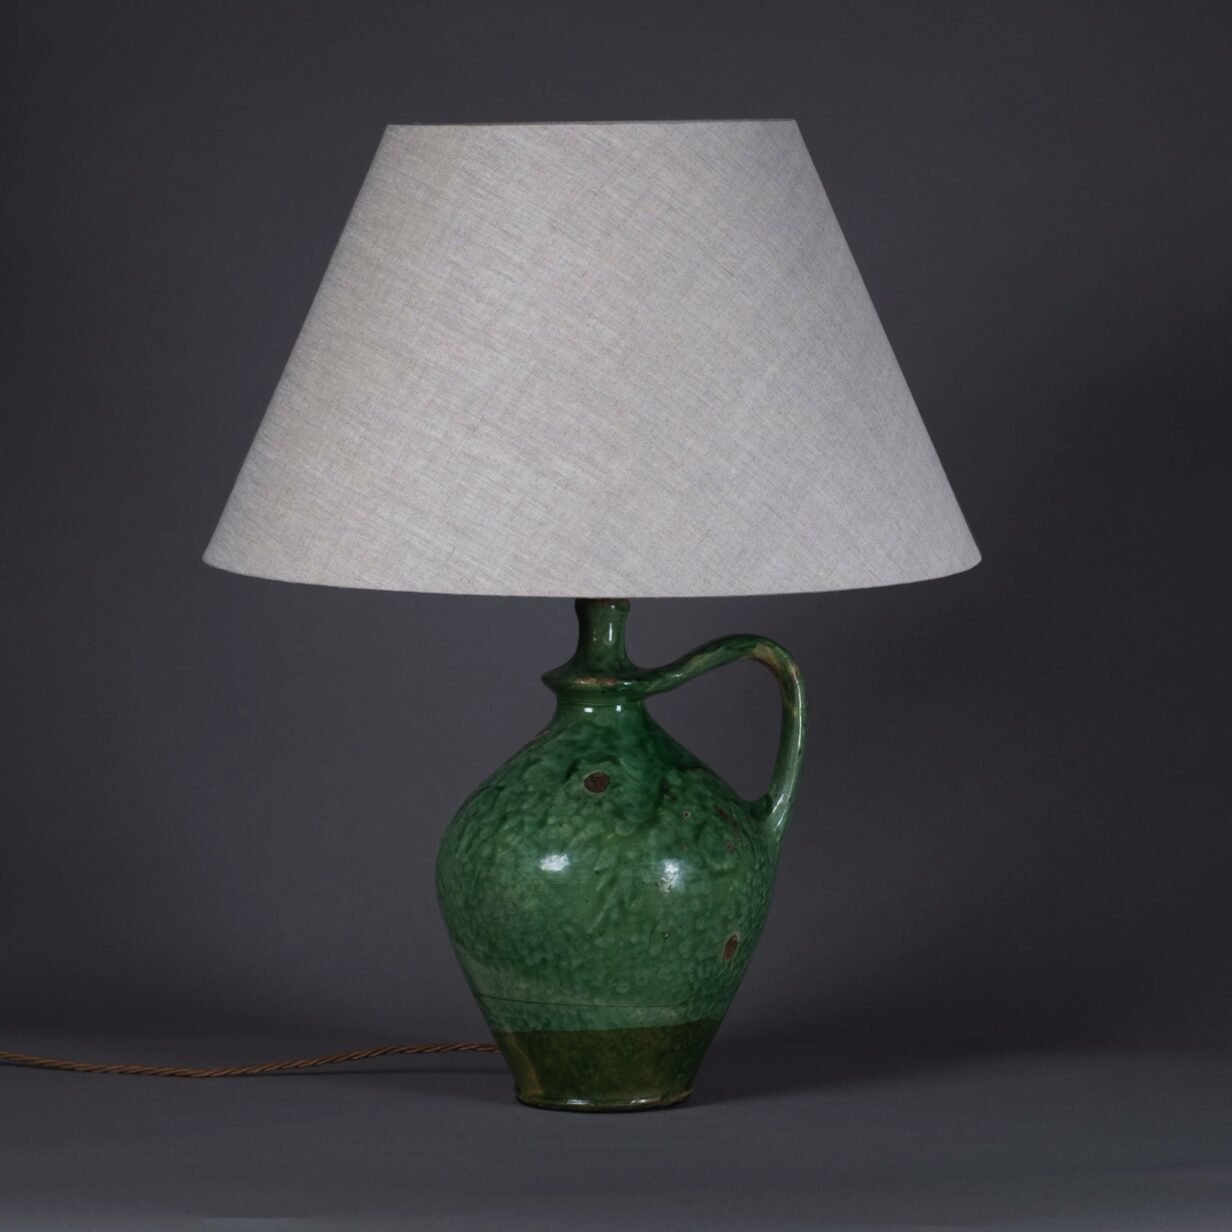 Green Amphora Vase Lamp